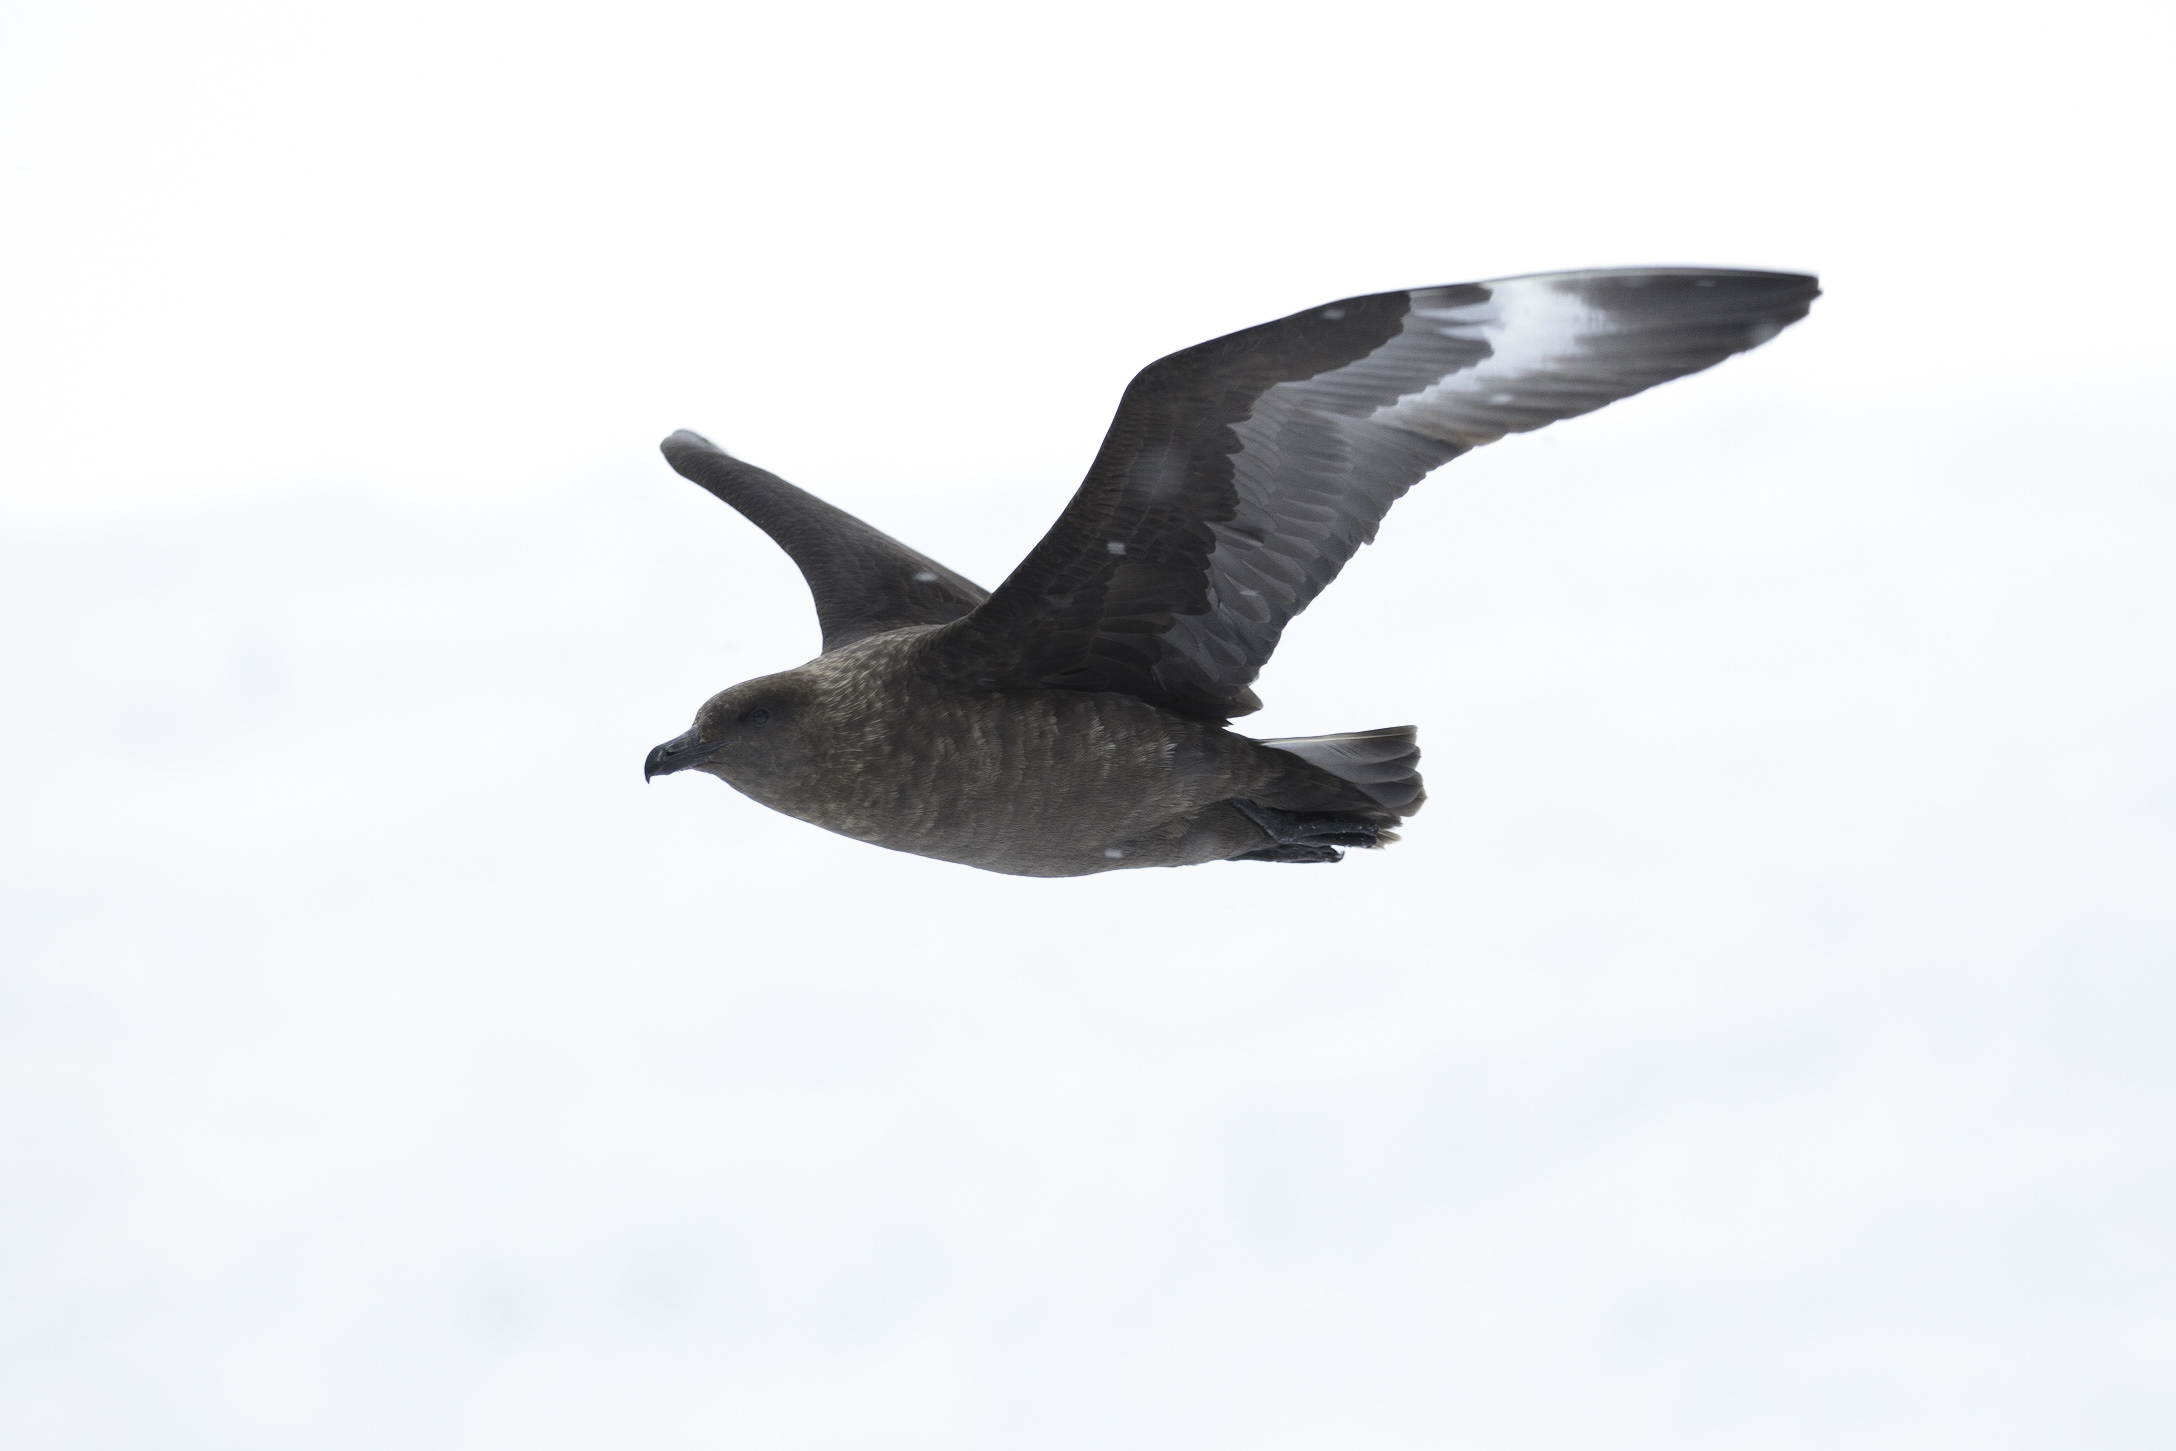 The f-16 fighter jet of Antarctica, a skua cruises on the blustery wind.